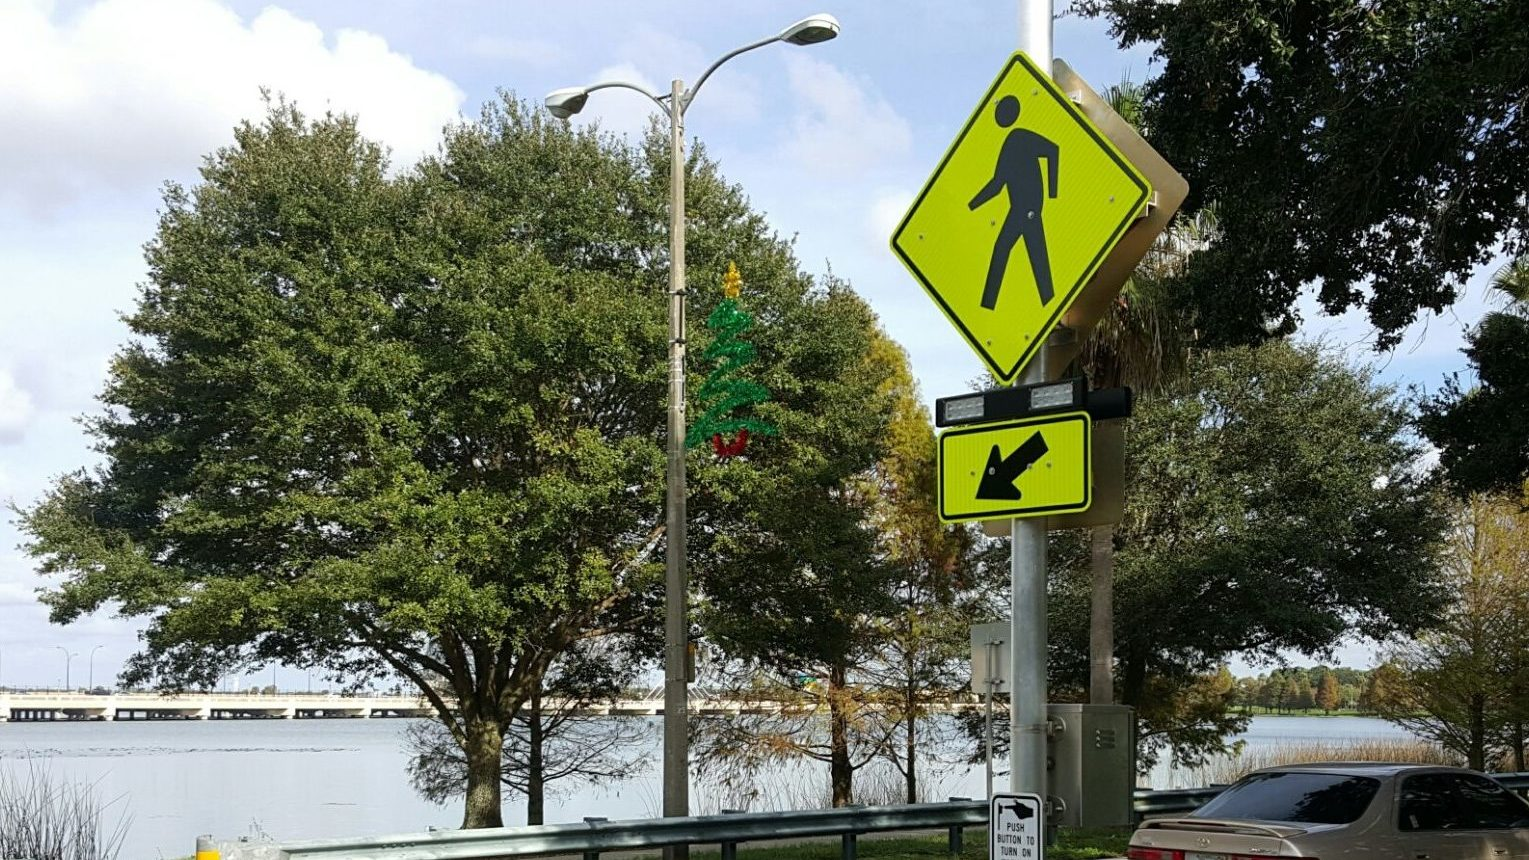 Rectangular Rapid Flashing Beacon…..What?